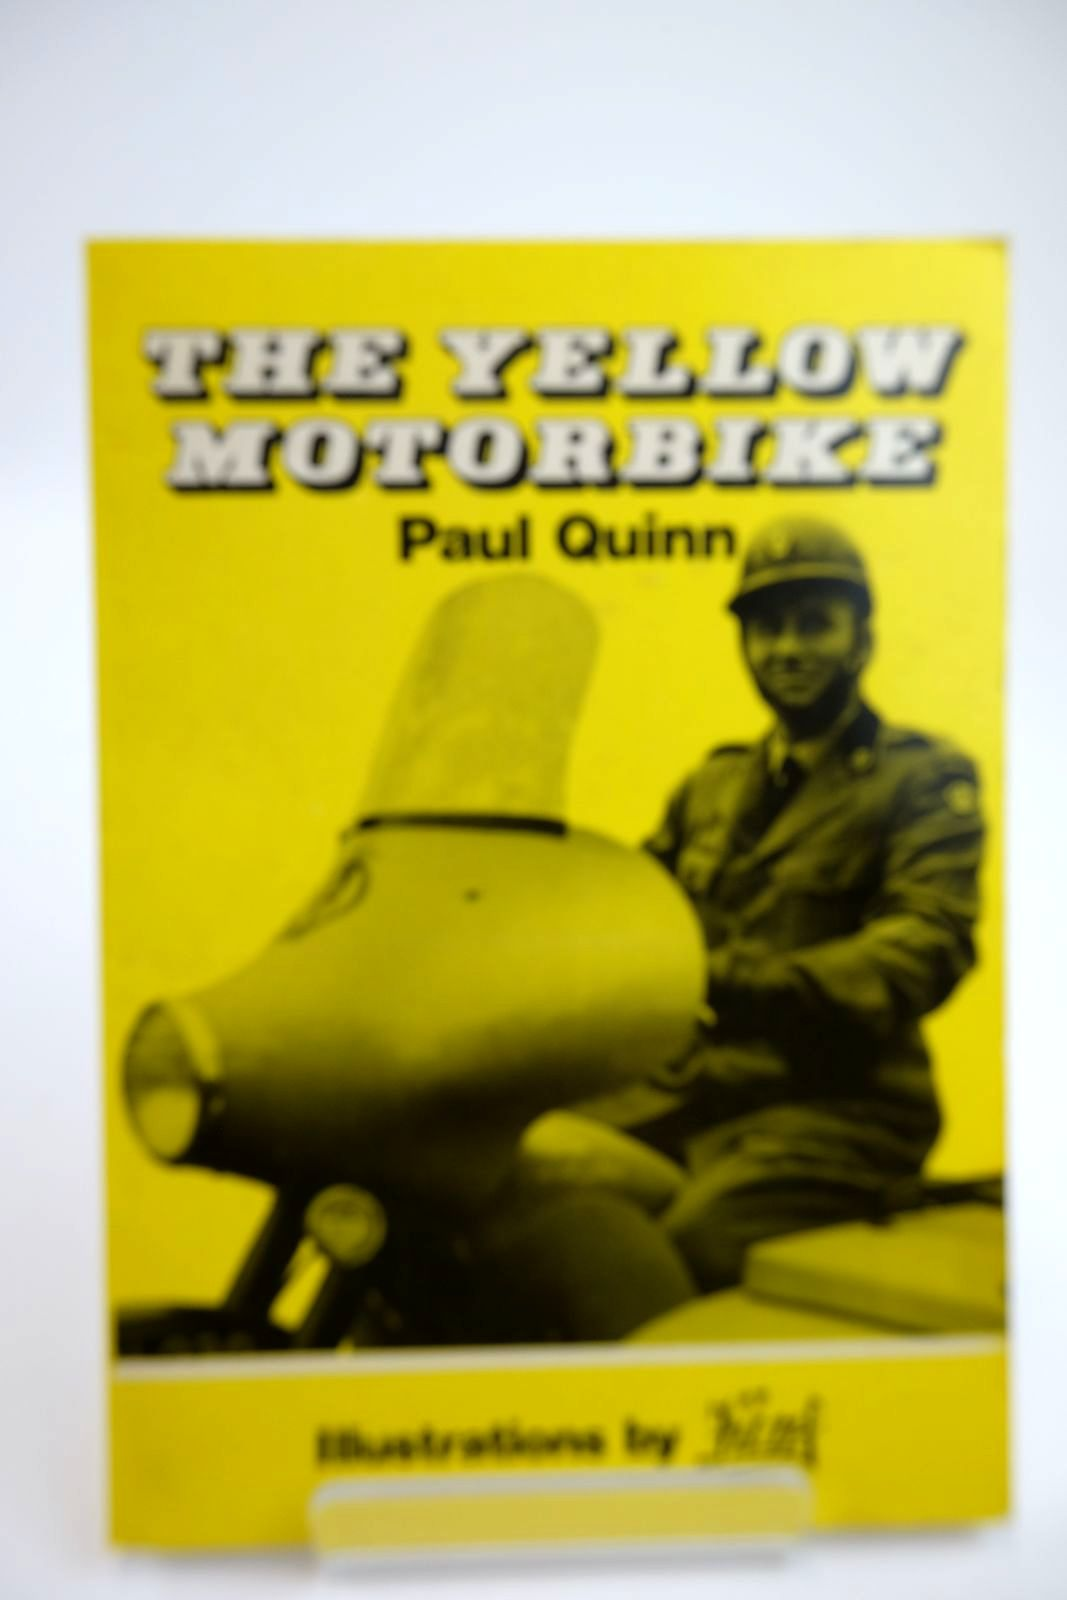 Photo of THE YELLOW MOTORBIKE written by Quinn, Paul illustrated by Funf,  published by Paul Quinn (STOCK CODE: 2132358)  for sale by Stella & Rose's Books